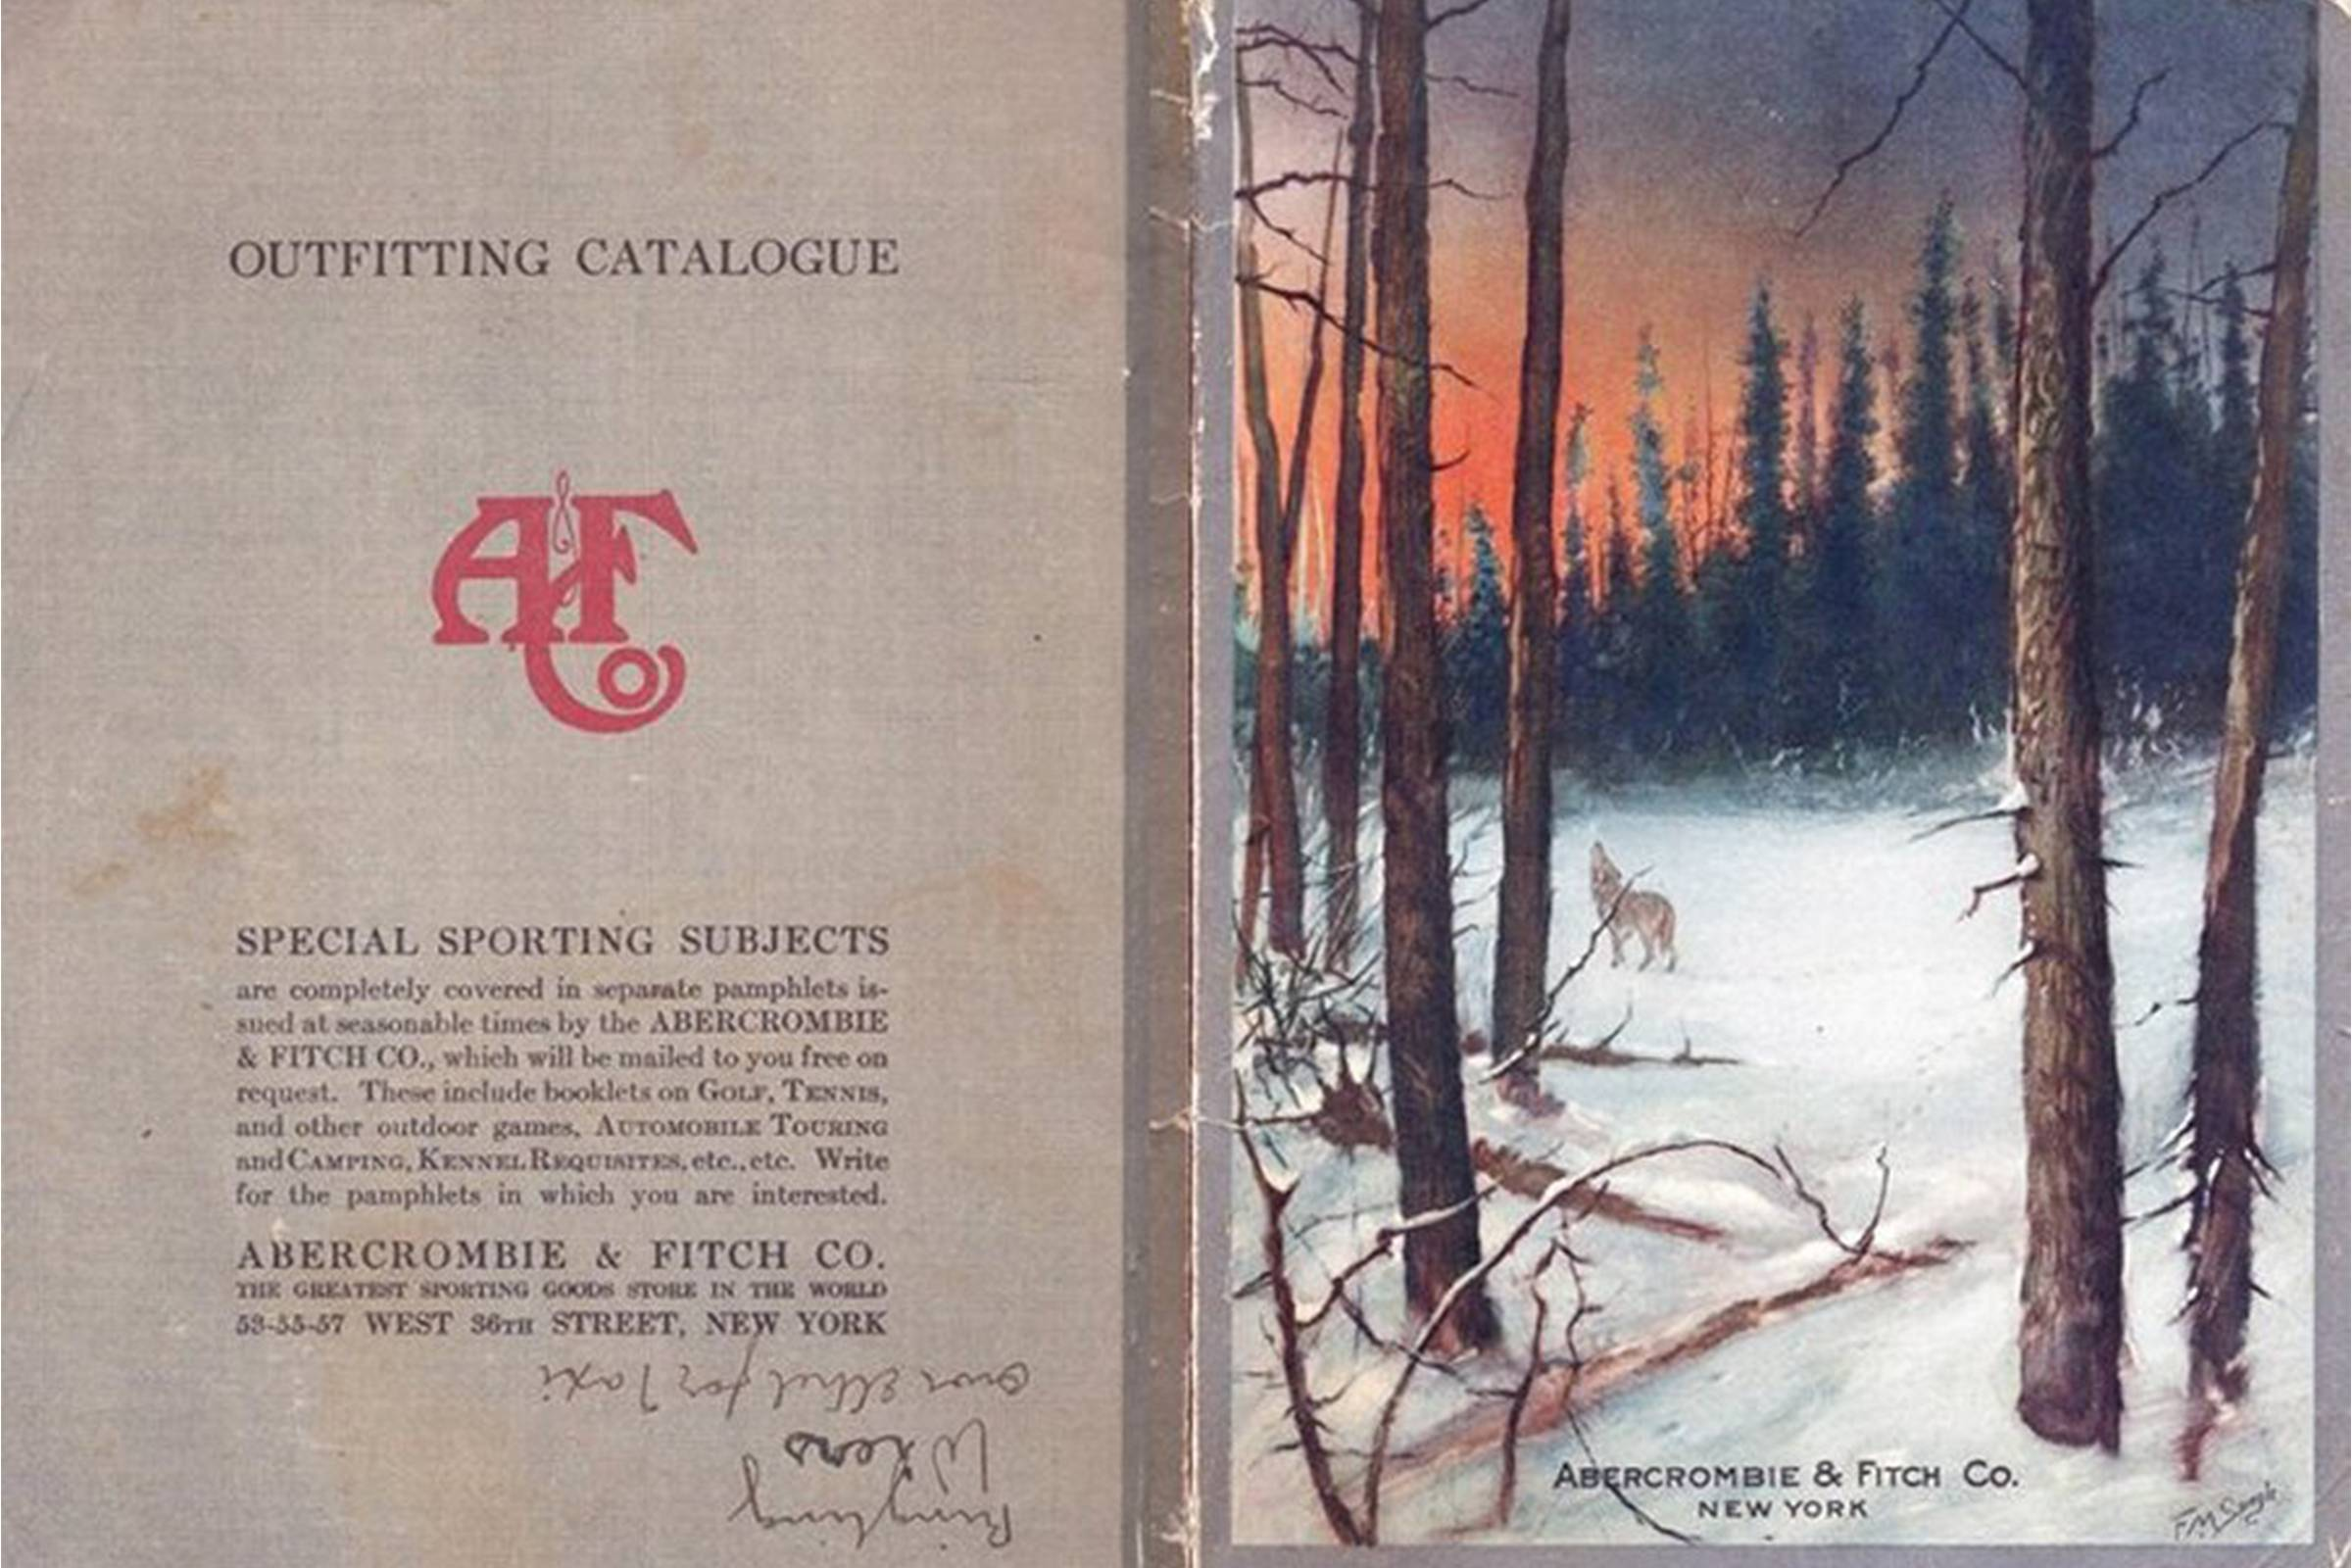 An Abercrombe & Fitch catalog from 1915